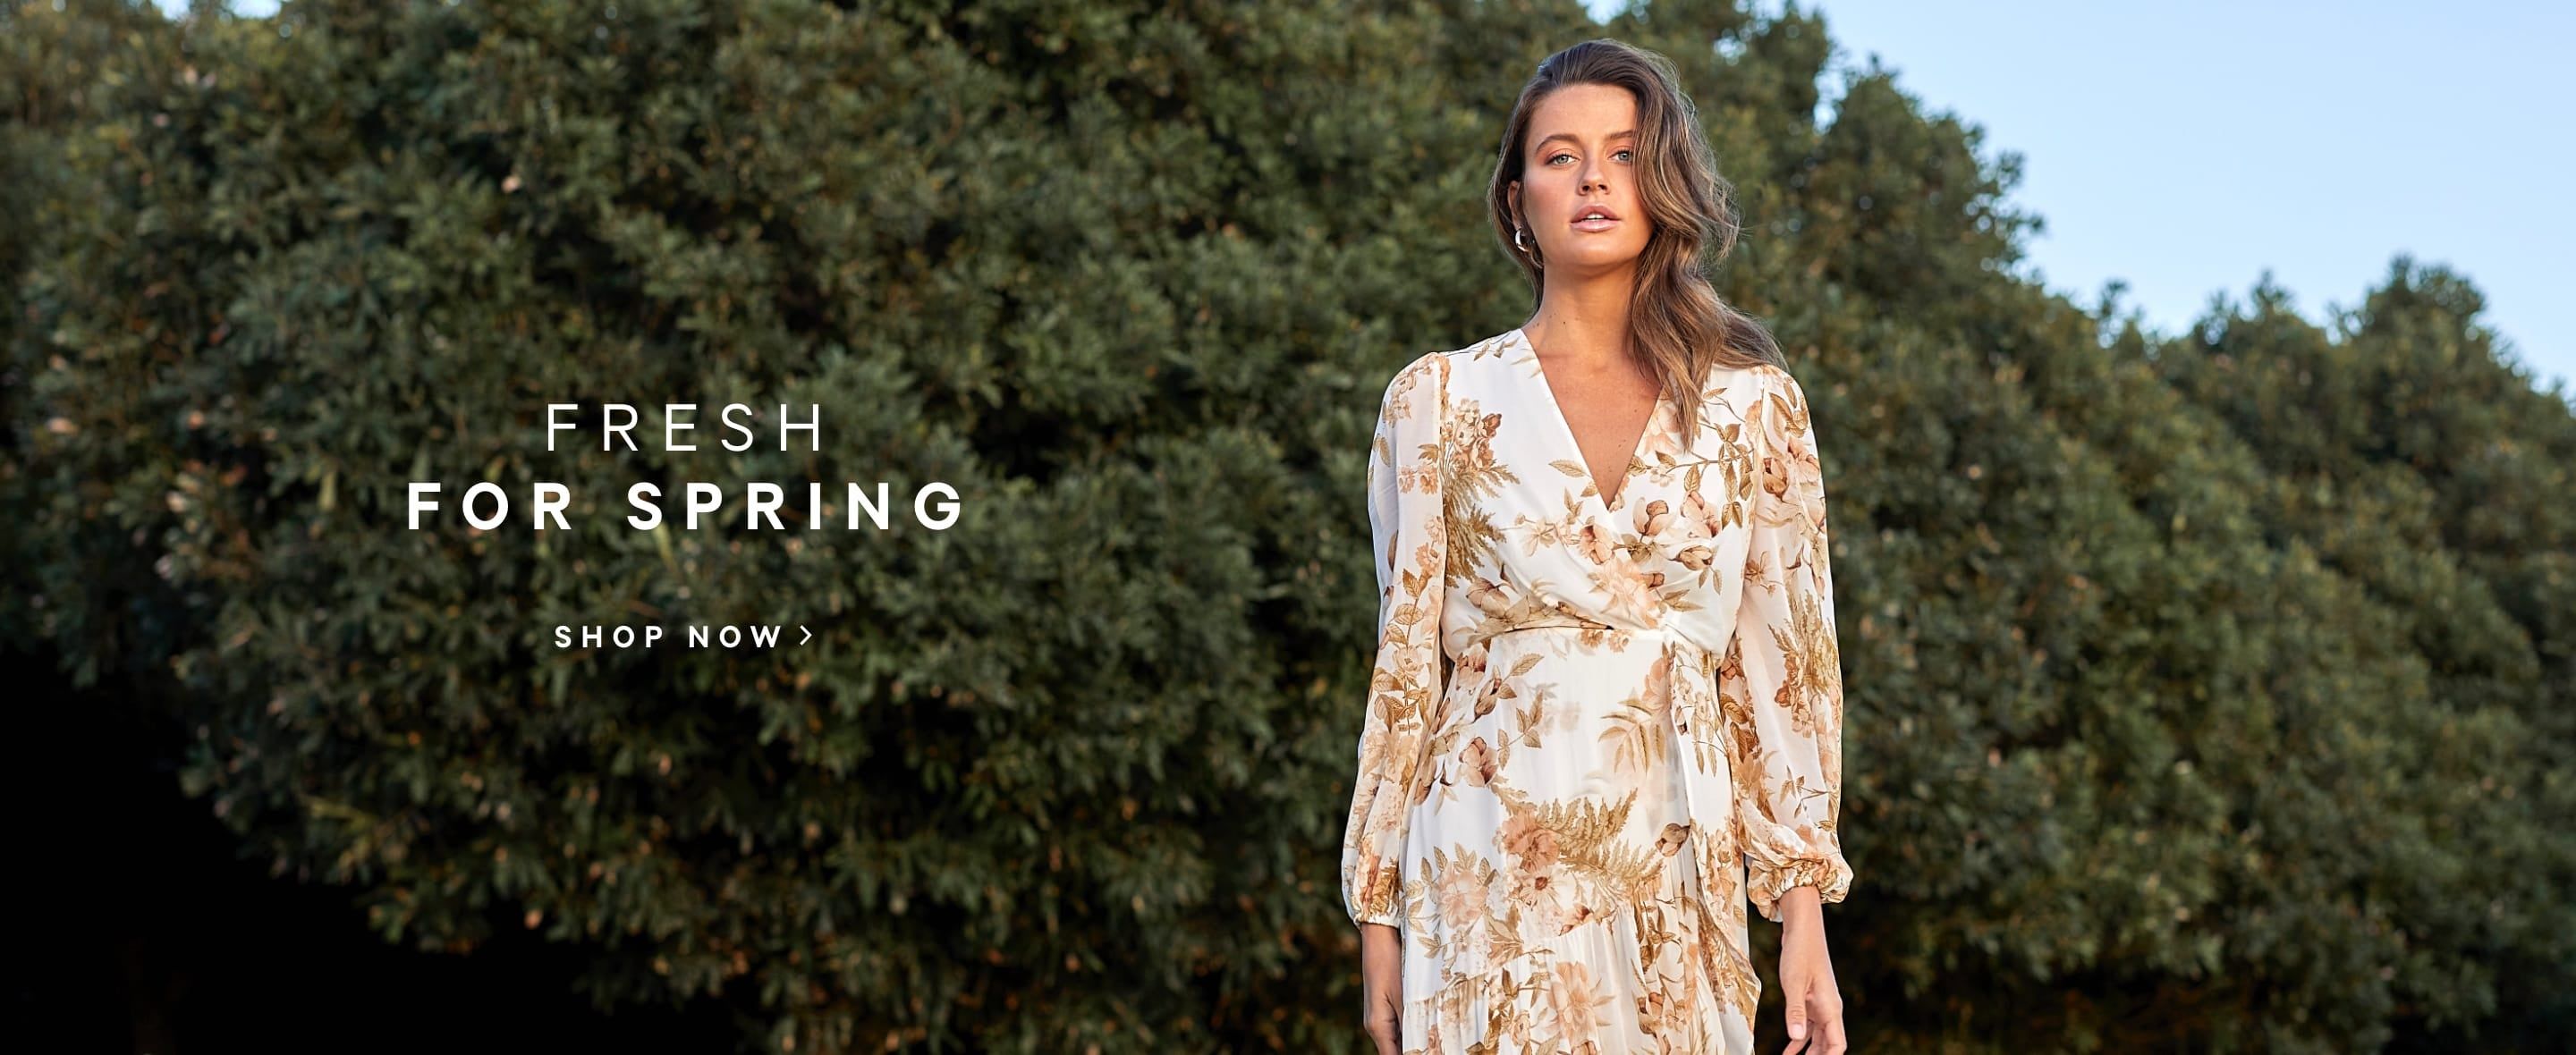 Fresh for Spring - Shop Full Price Styles | Ever New